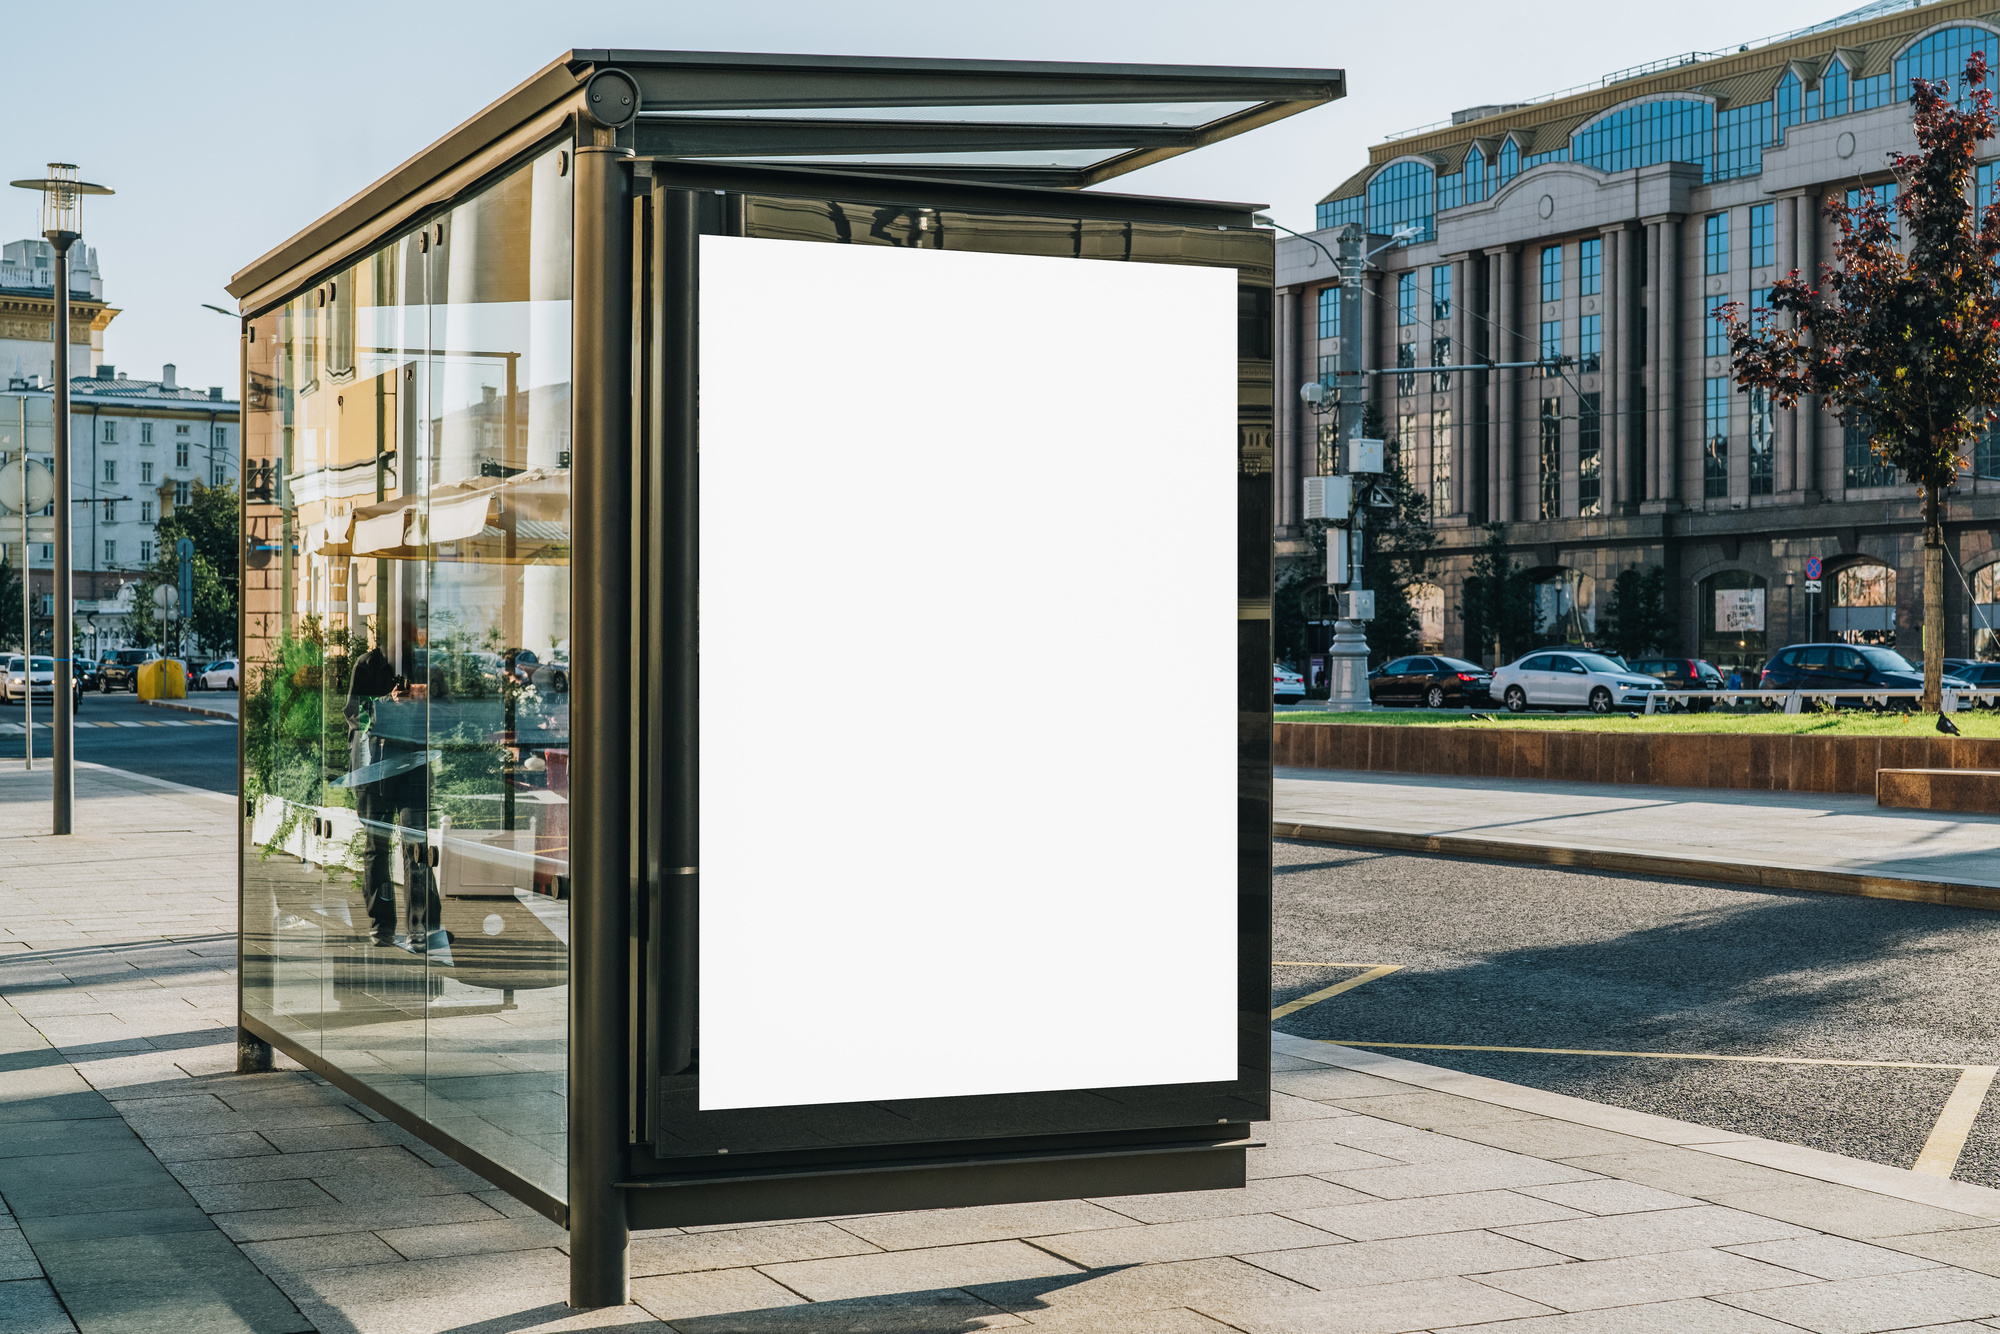 blank sign on bus stop